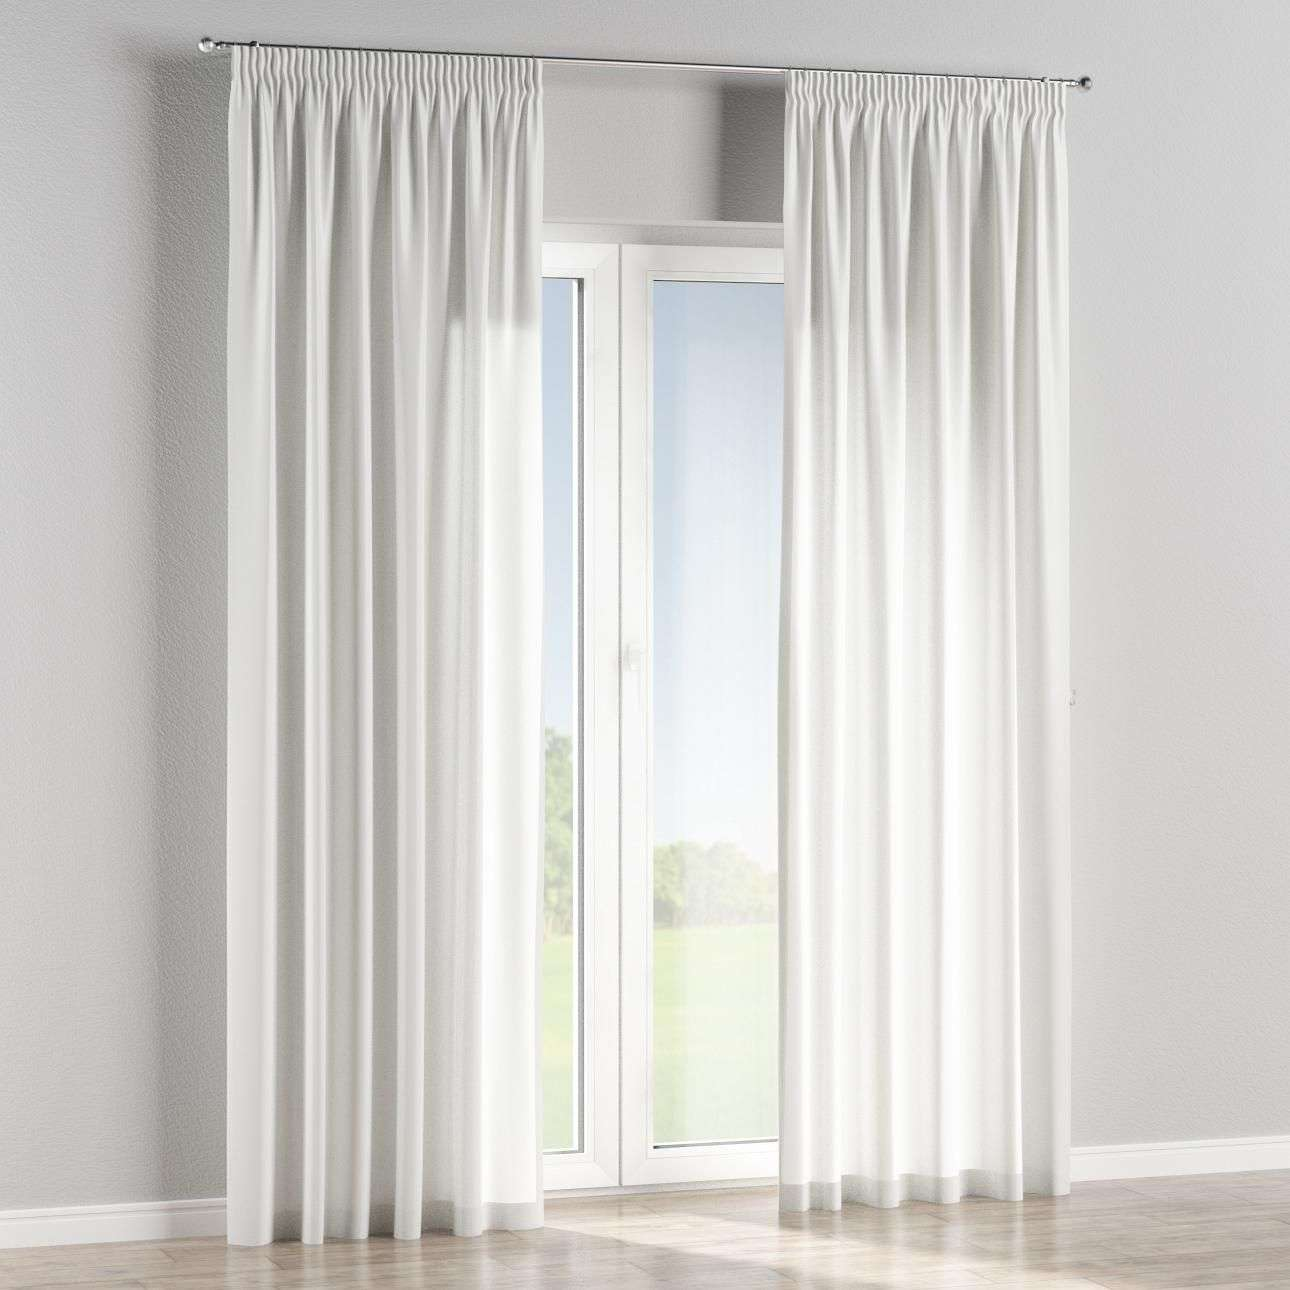 Pencil pleat curtains in collection Milano, fabric: 150-21